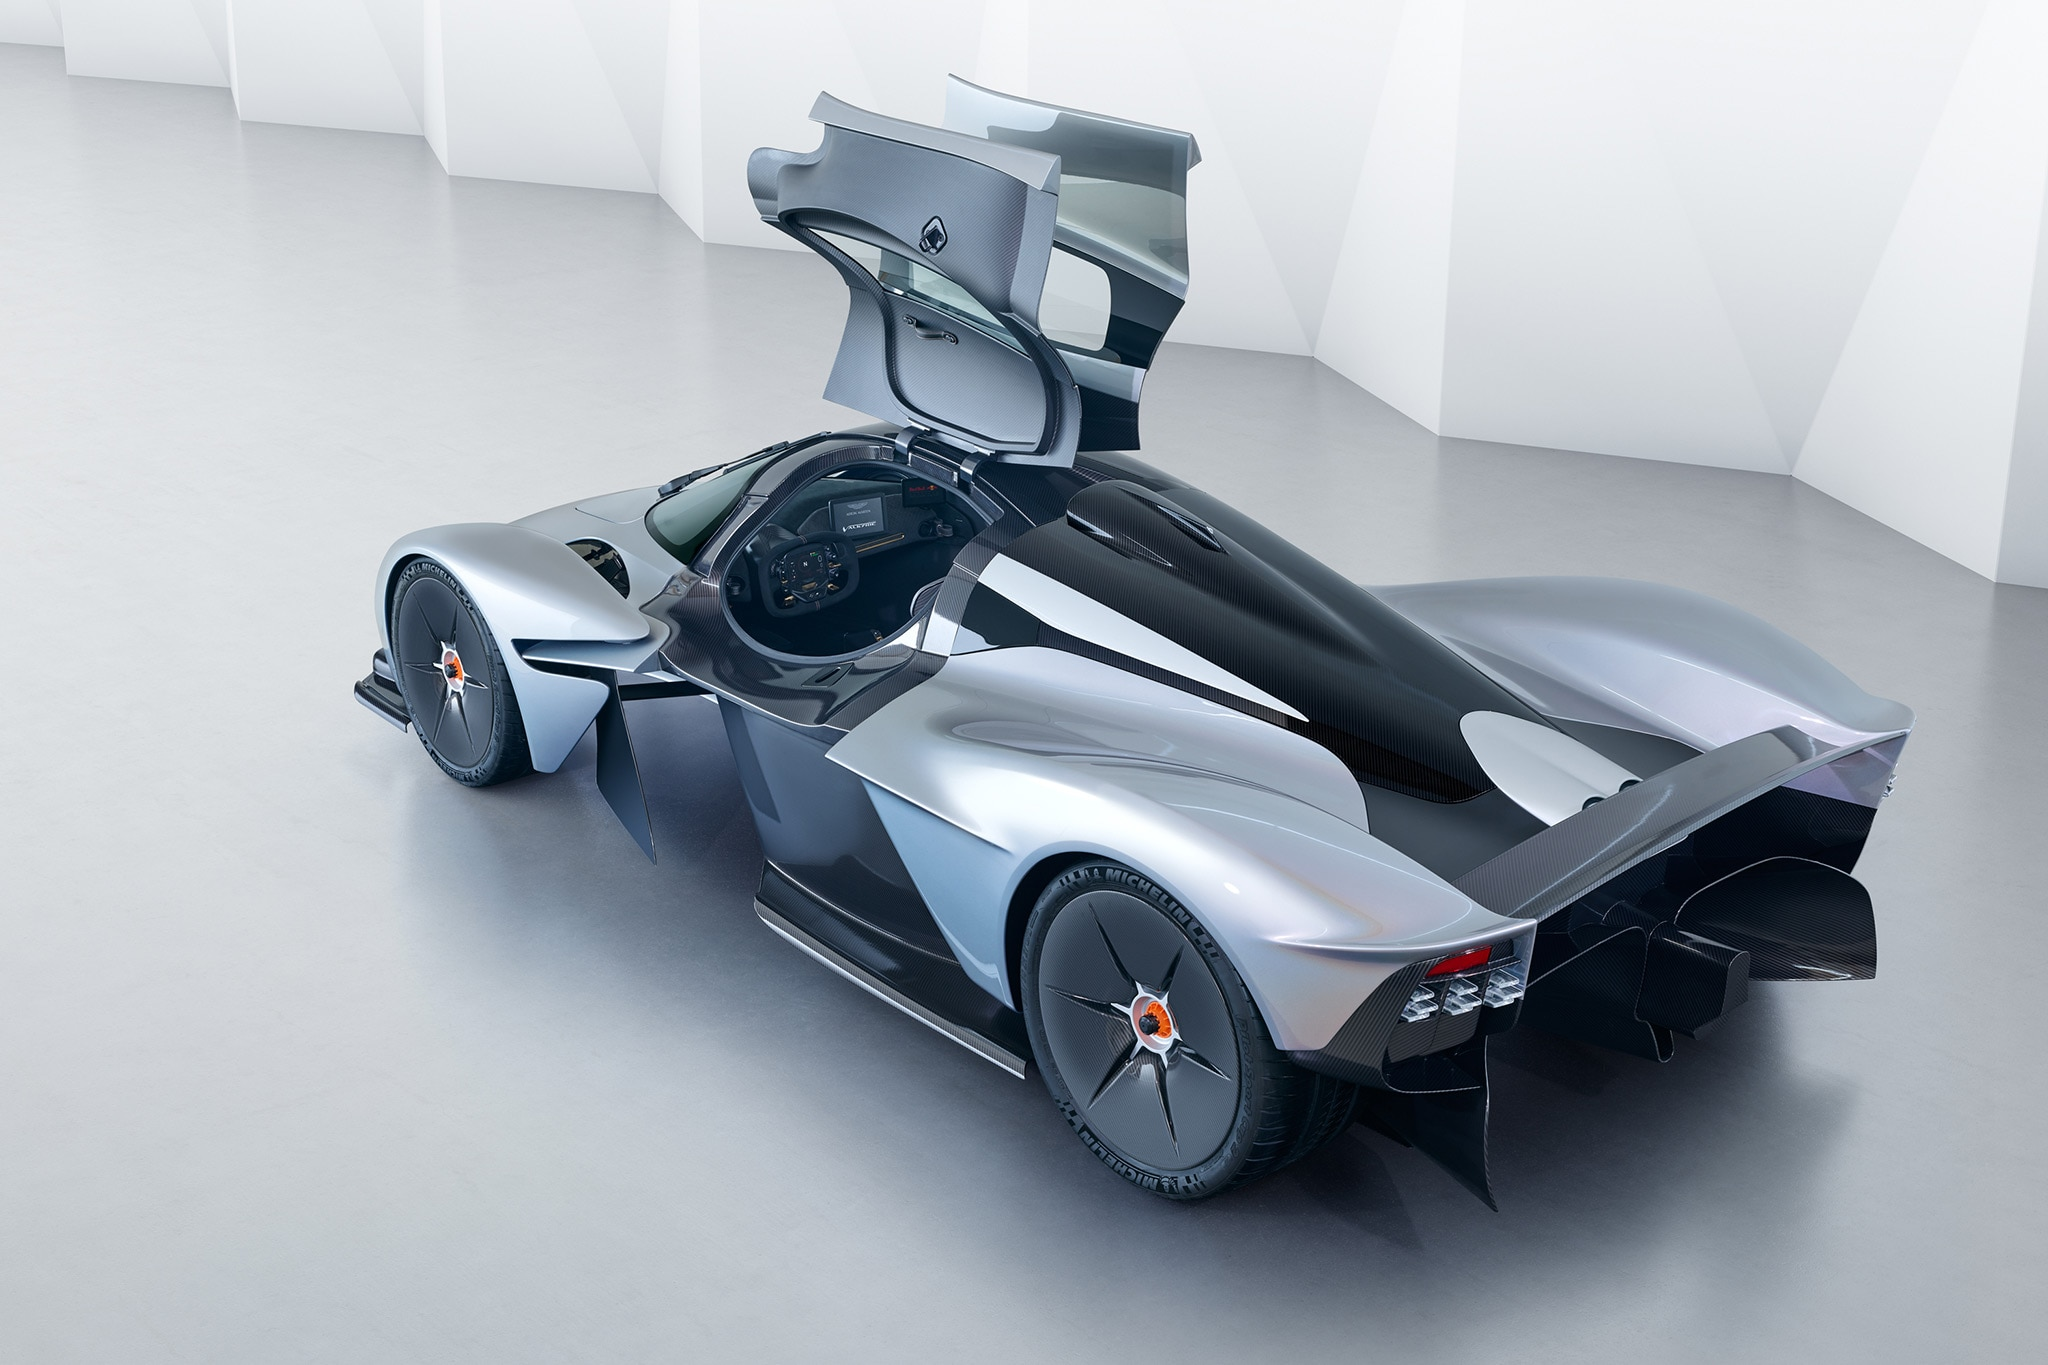 Aston Martin Valkyrie is nearly production-ready